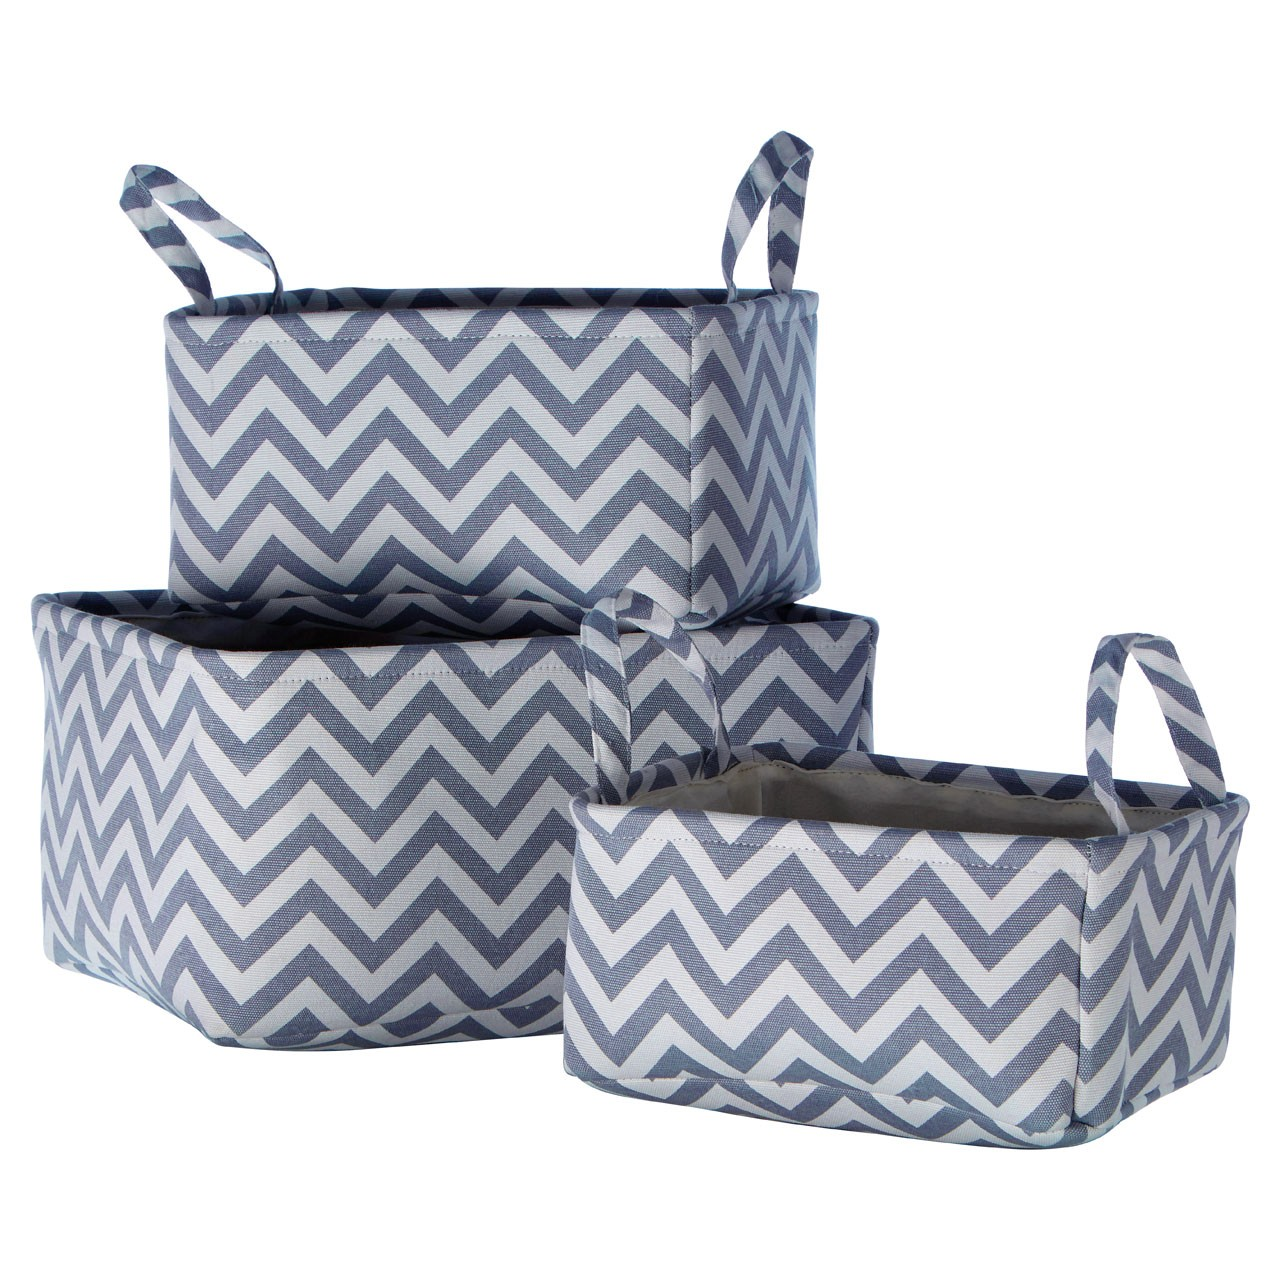 Prime Furnishing Chevron Storage Baskets - Grey - Set Of 3